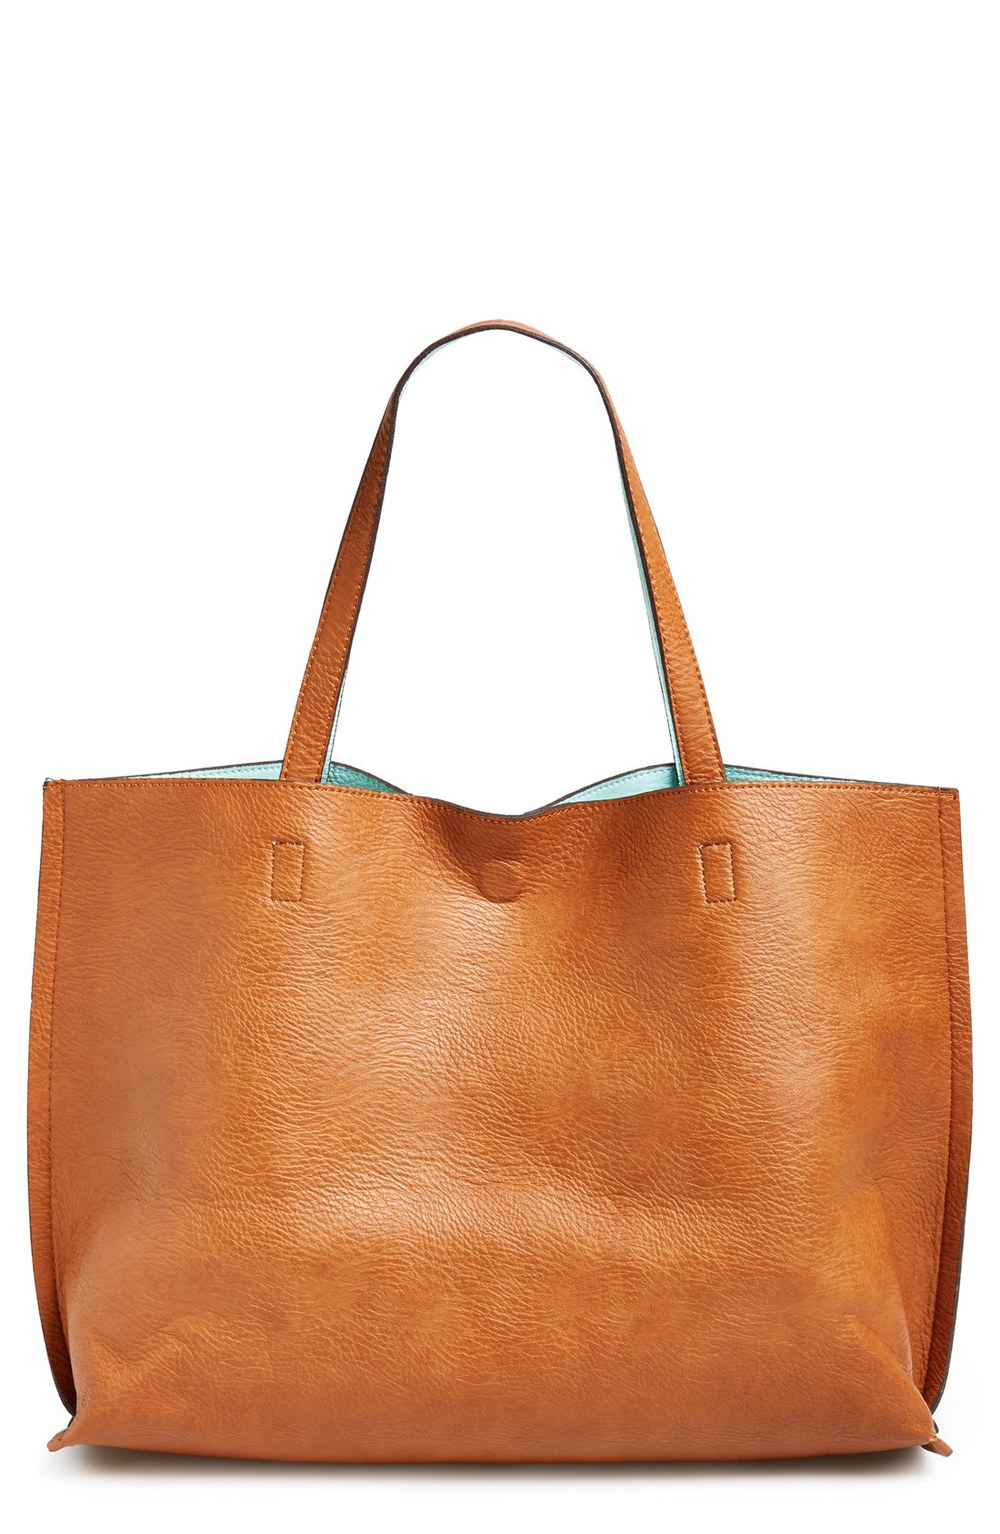 brown tote bag.jpg